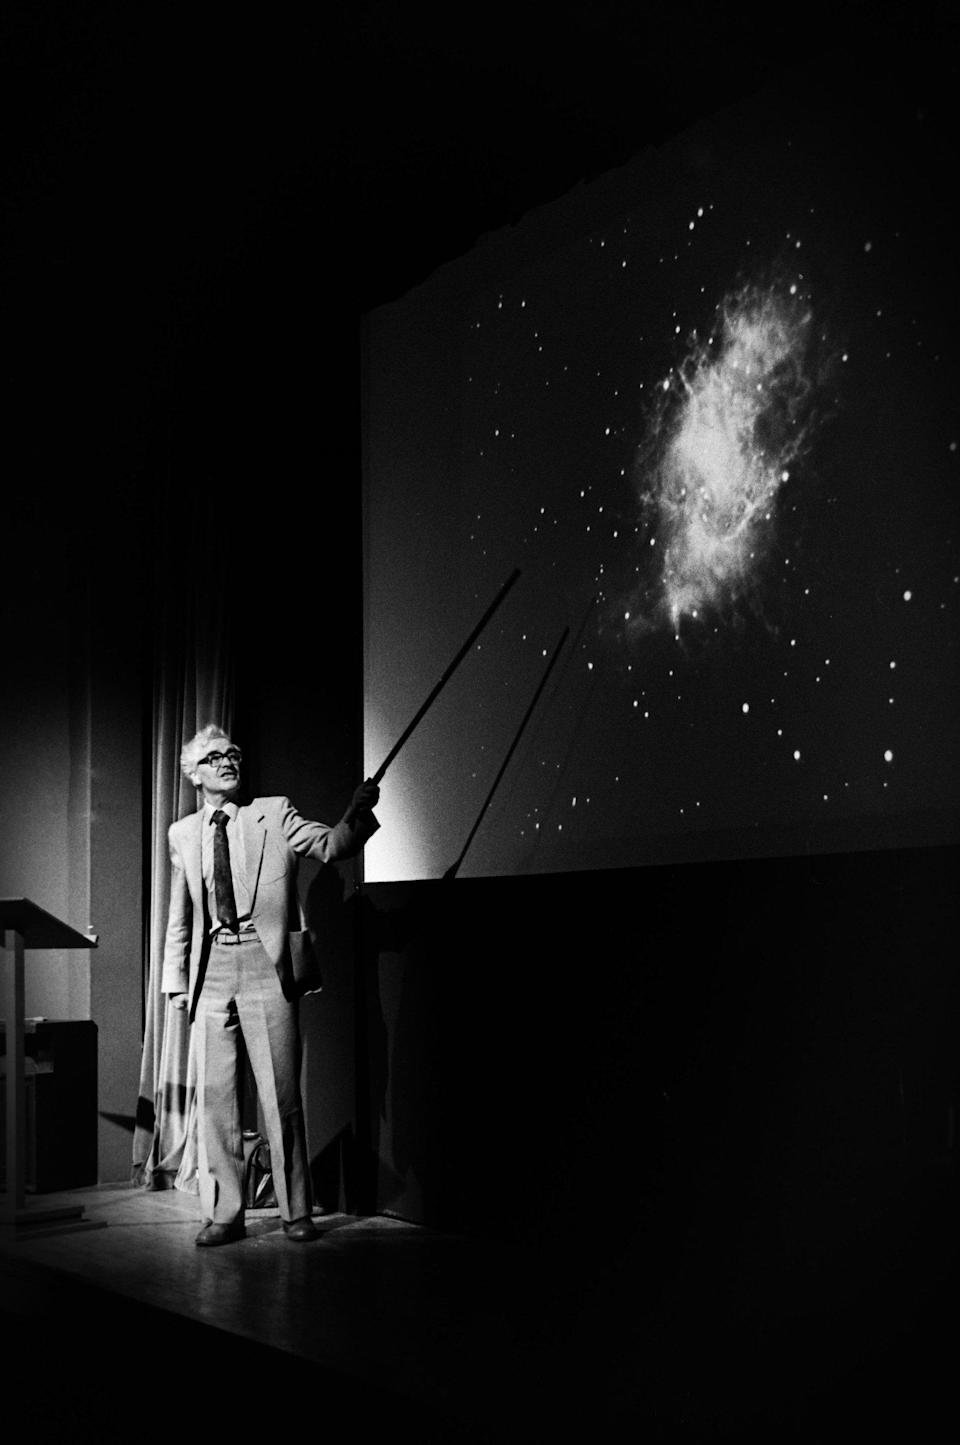 Hewish lecturing at Boston Astronomers conference in Lincolnshire in 1987 with a slide of the Crab Nebula - Alamy